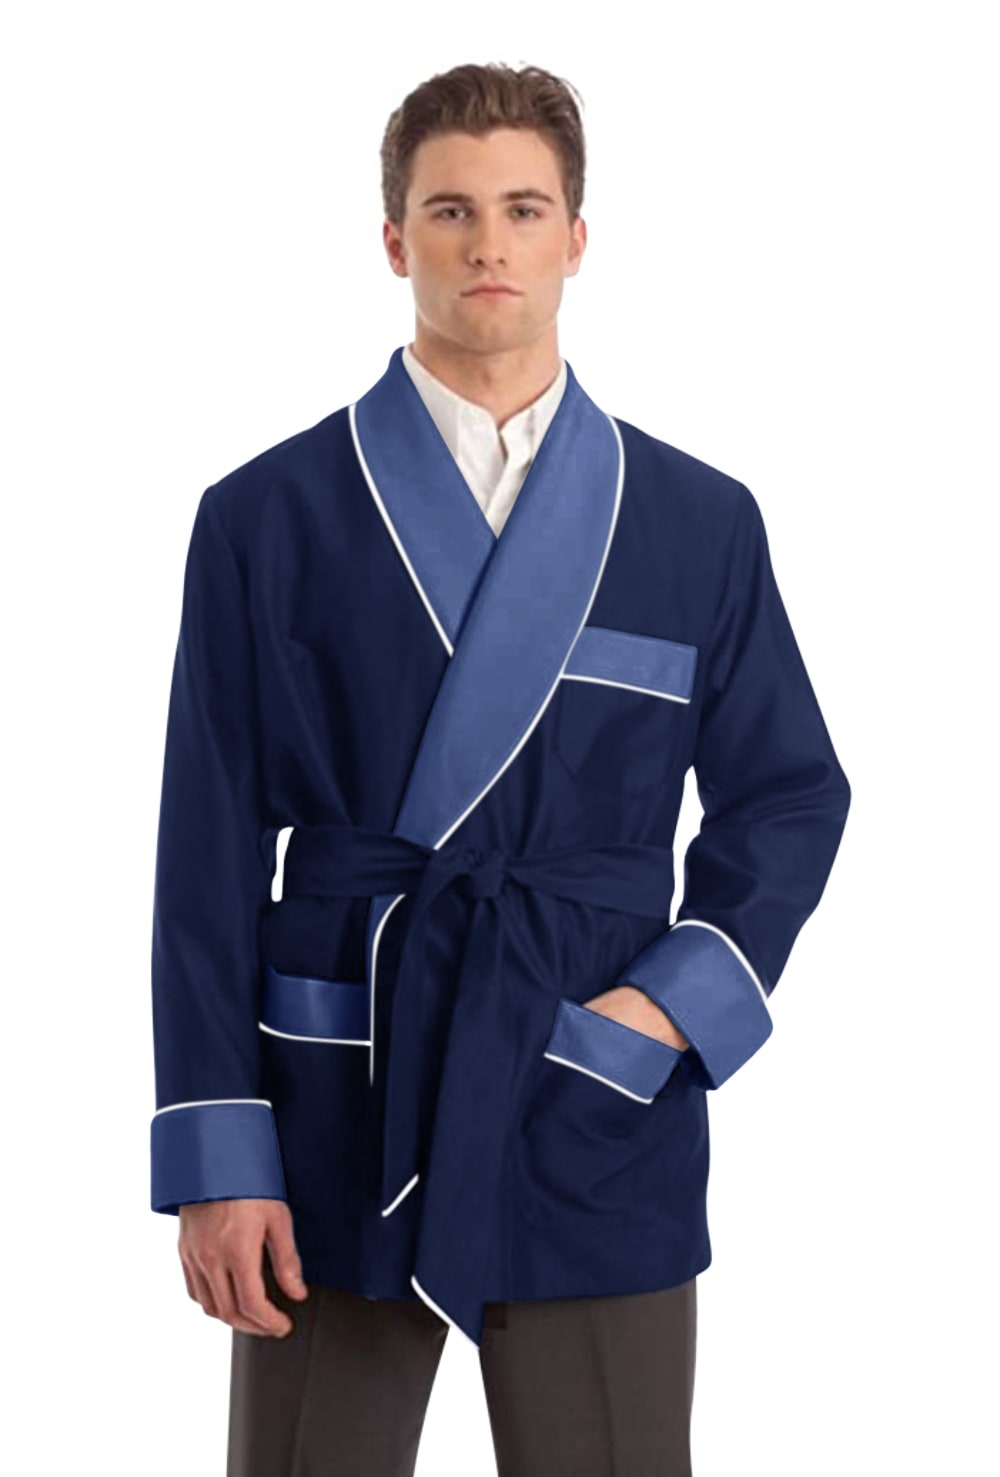 Silky Satin Smoking Jacket - Blue